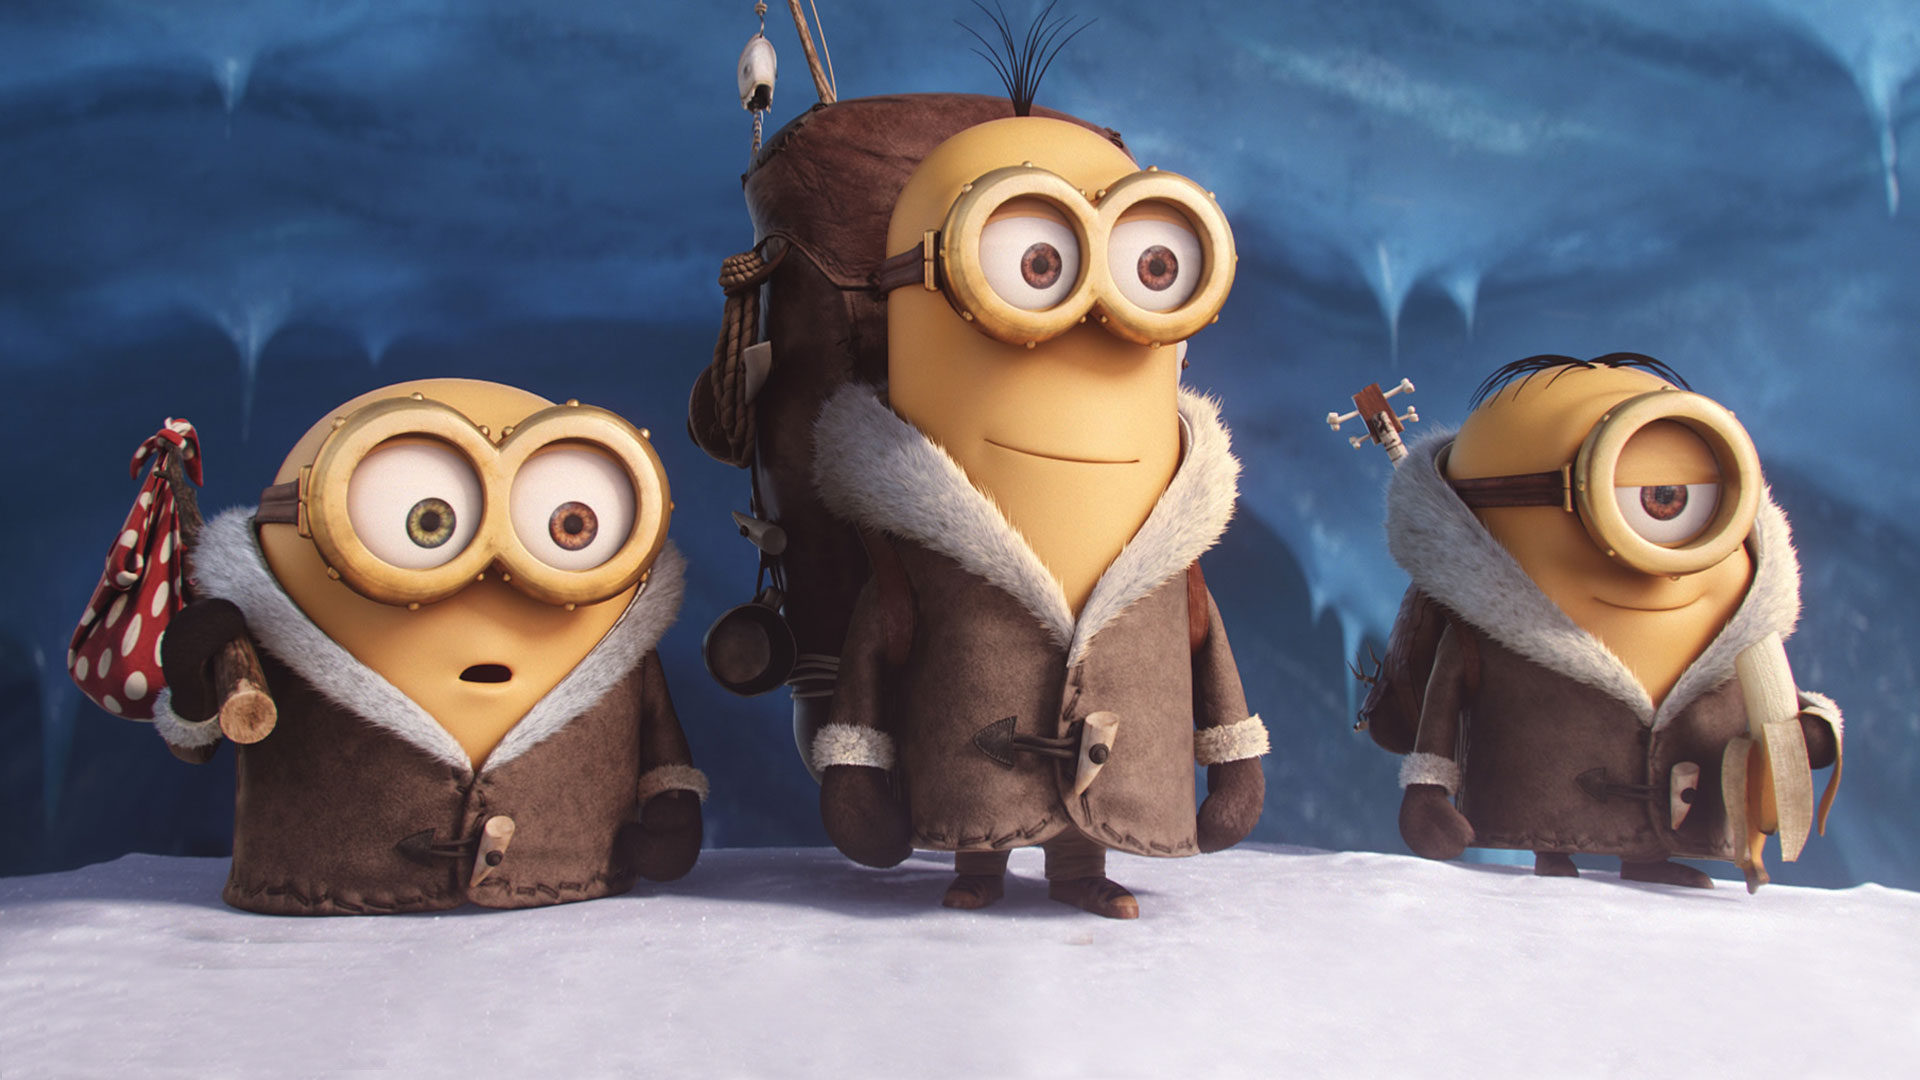 A Cute Collection Of Minions Movie 2015 Desktop Backgrounds 1920x1080